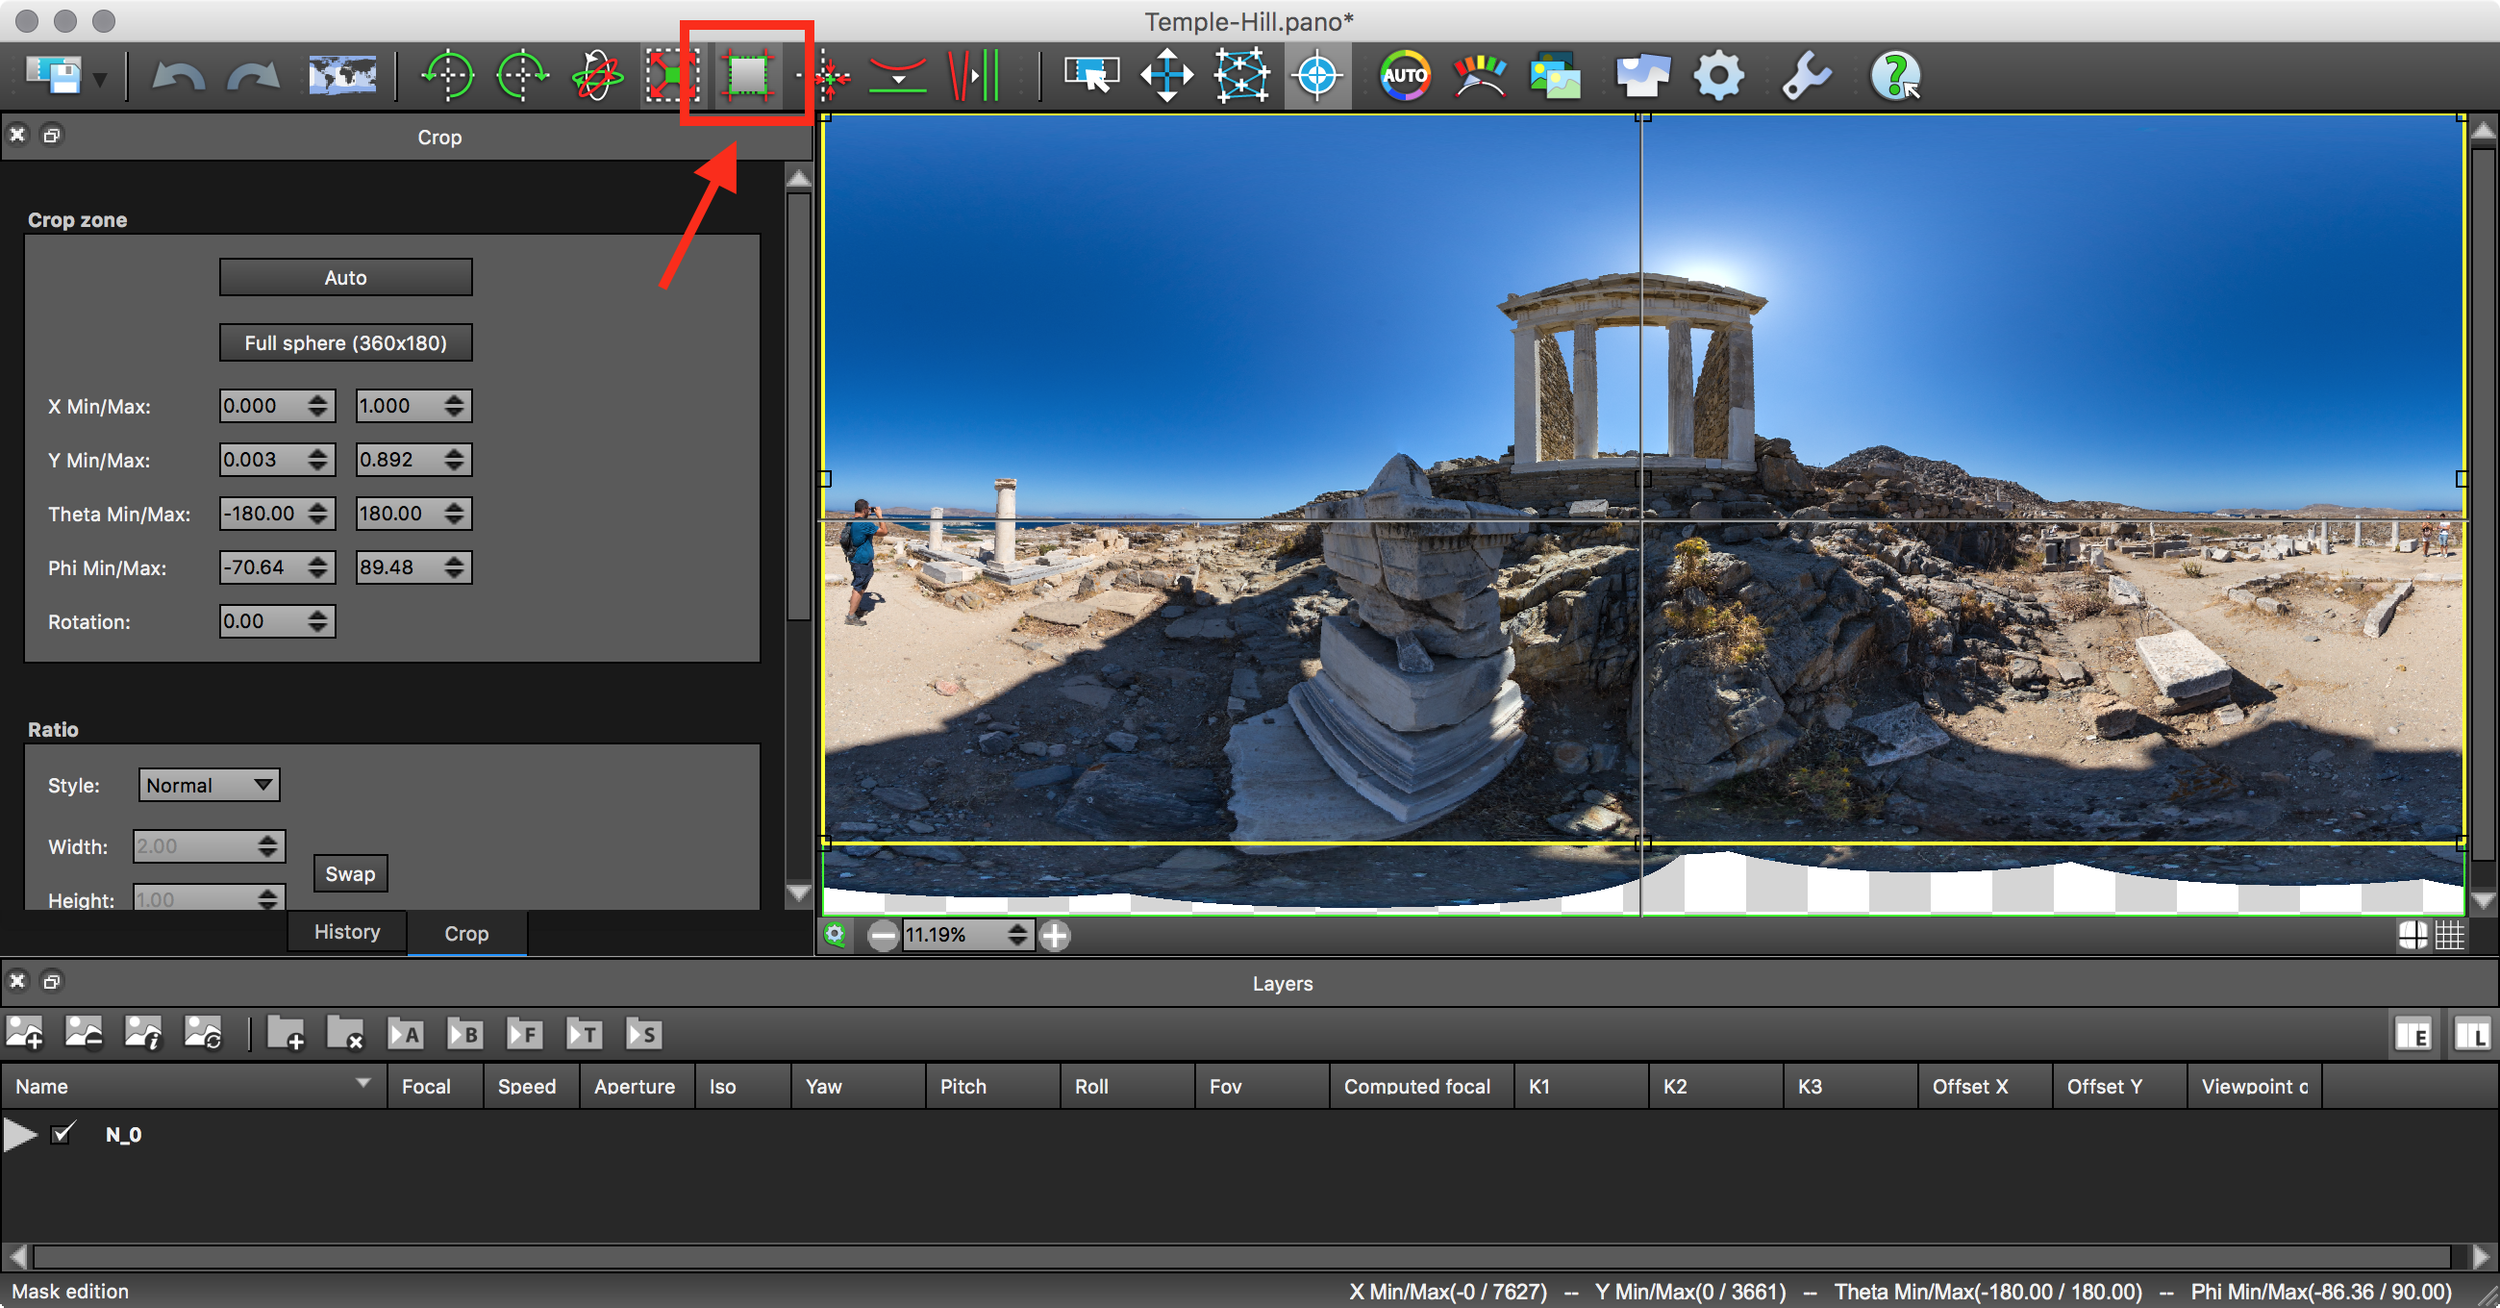 Edit window and Crop button